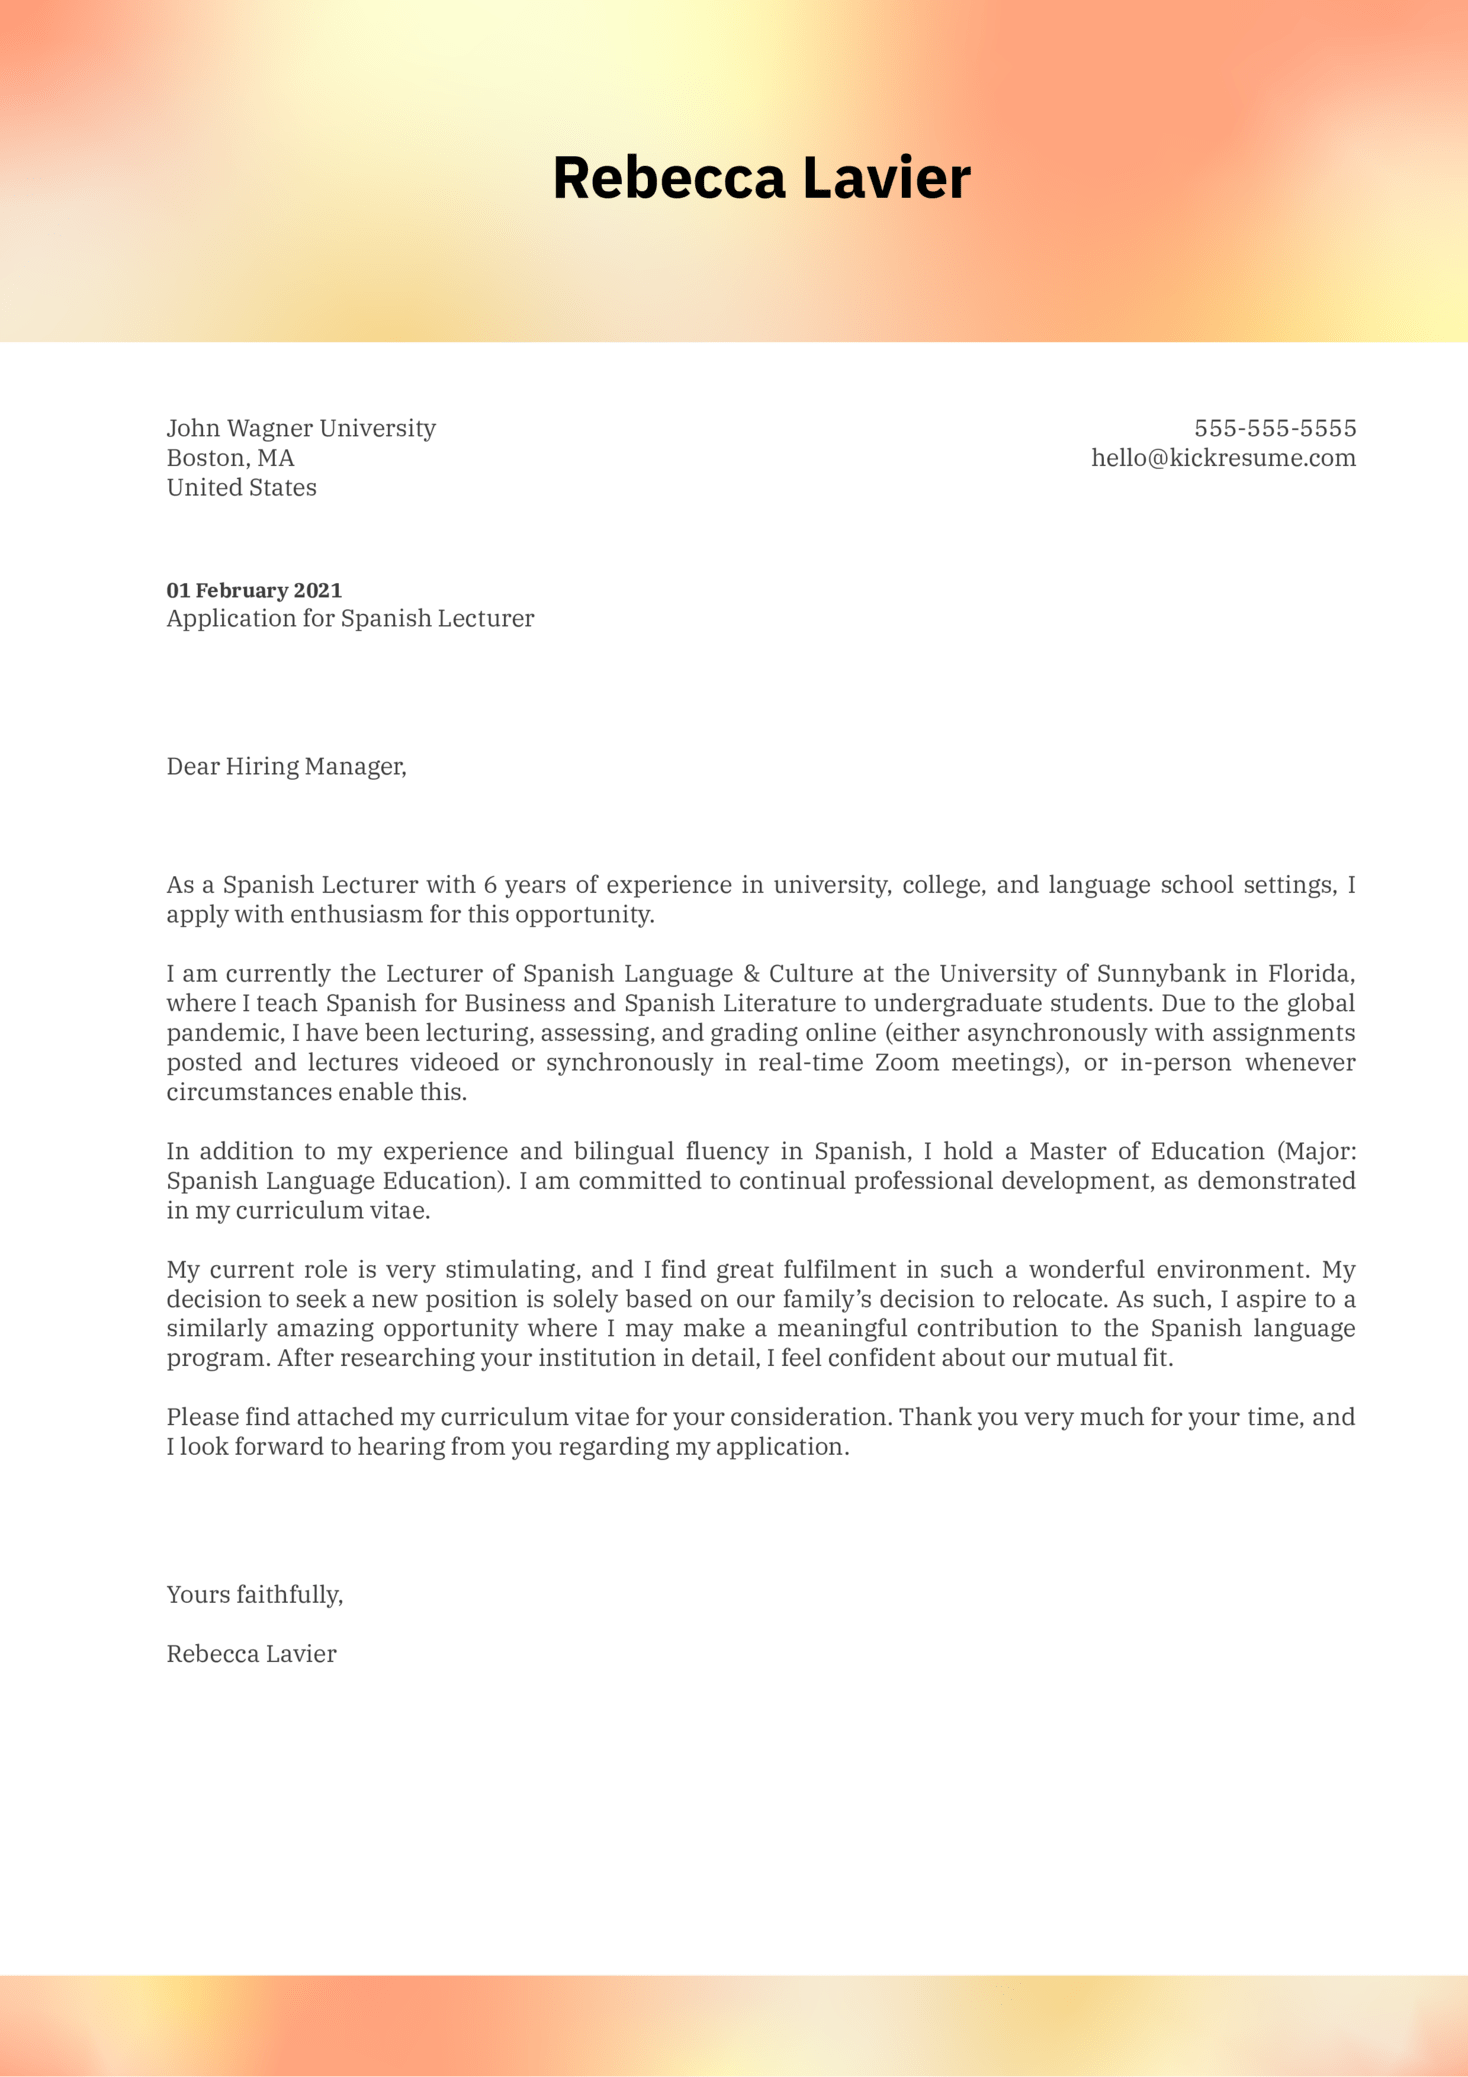 Spanish Lecturer Cover Letter Example